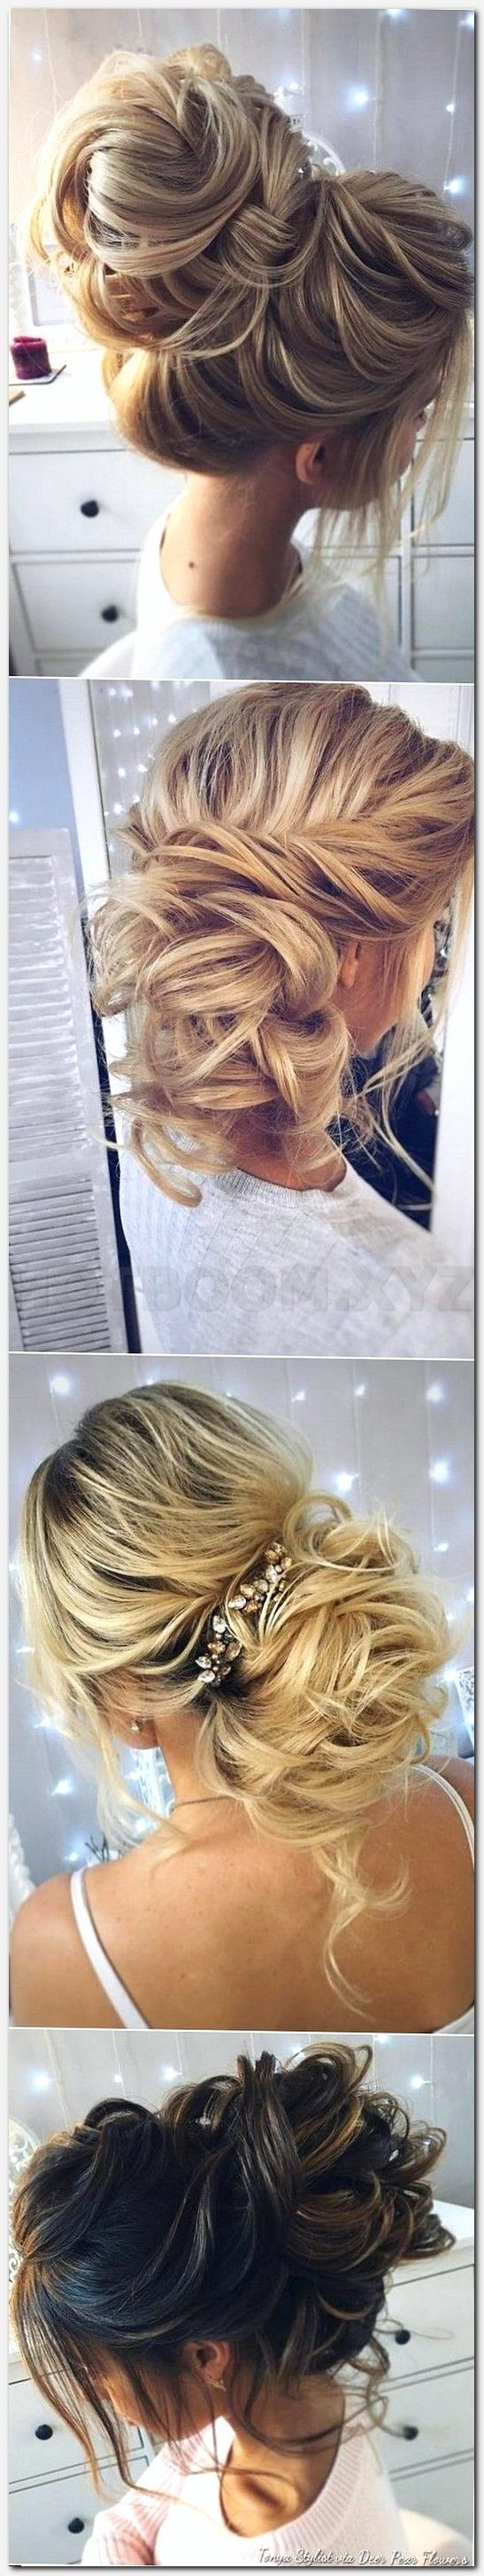 hairstyles for flat thin hair, short spiky haircuts for women, hairstyles for long braids, braiding with style, bridal updos for long hair, simple fancy hairstyles, easy quick hairstyles for kids, hairstyles for very fine thin straight hair, medium length prom hairstyles, hair design short hair, new hairstyles 2017 women, straight hair bob hairstyles, medium haircuts for 2017, hairstyle different, new haircut women's 2017, hair cut in a bob